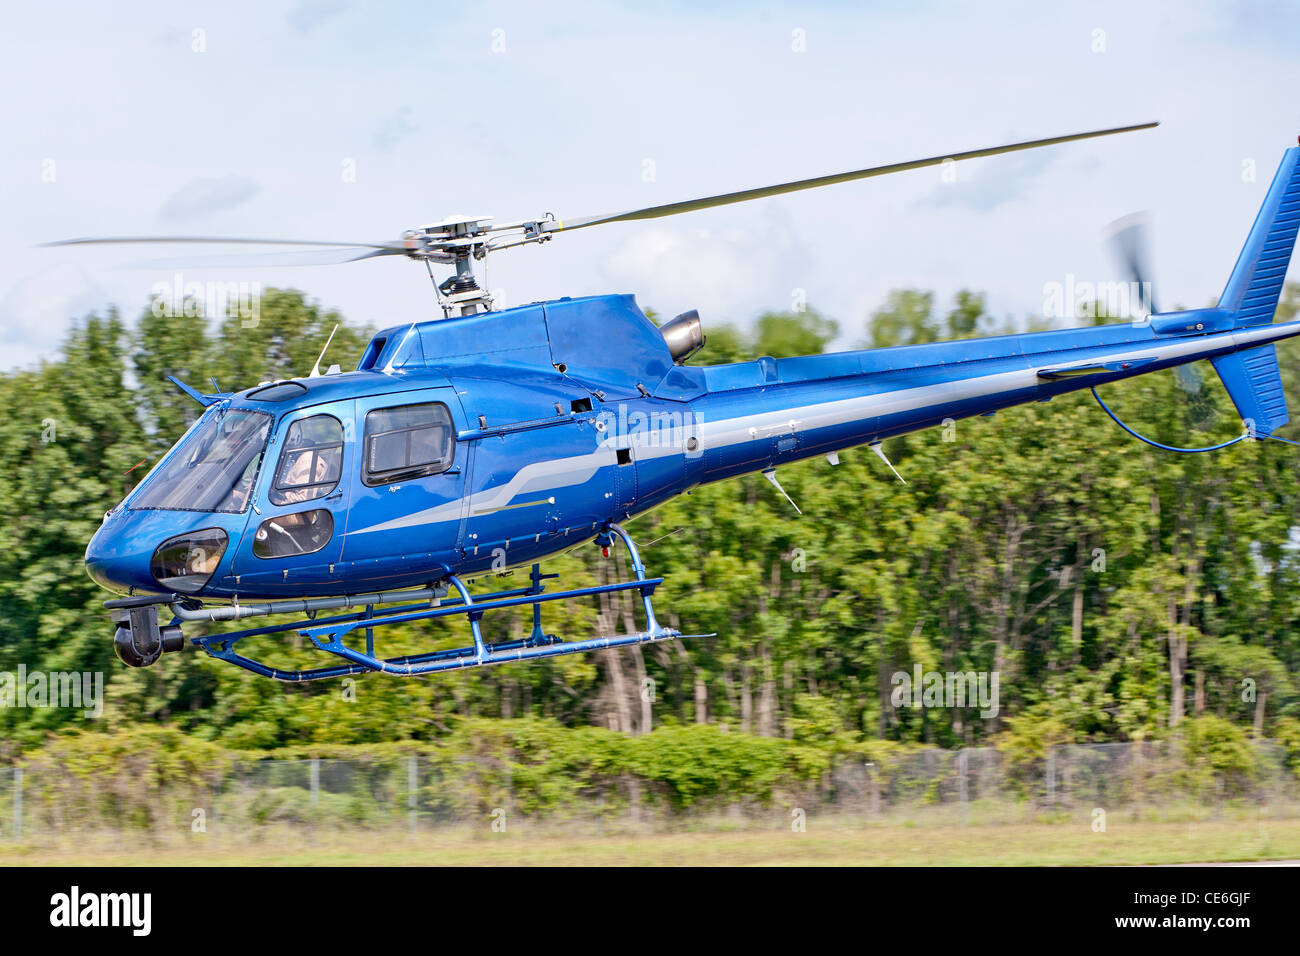 A Eurocopter Rotorcraft helicopter flies low to the ground. - Stock Image